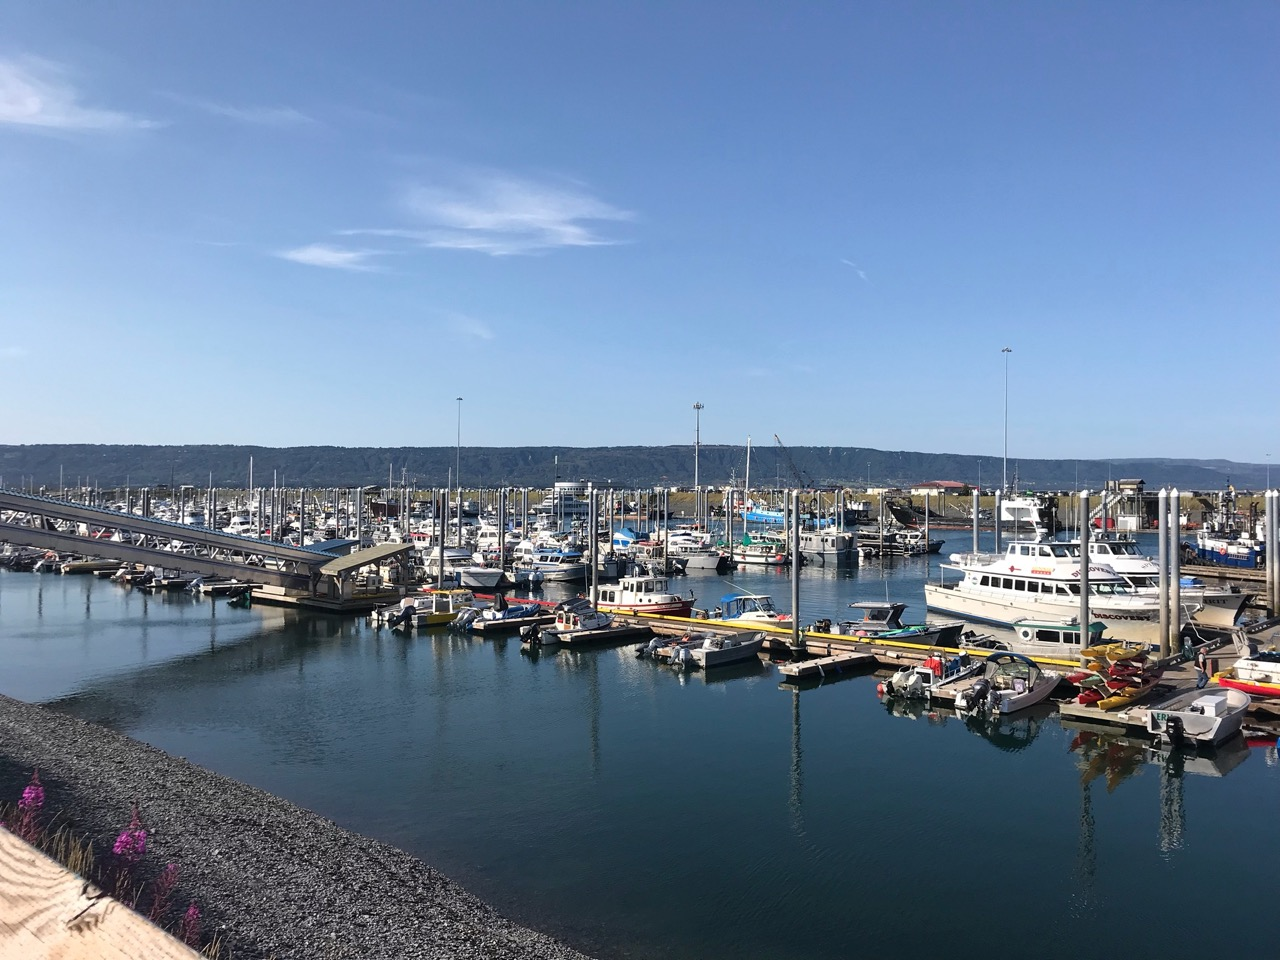 Homer Boat Harbor. We saw multiple seals and sea otters in the harbor itself.